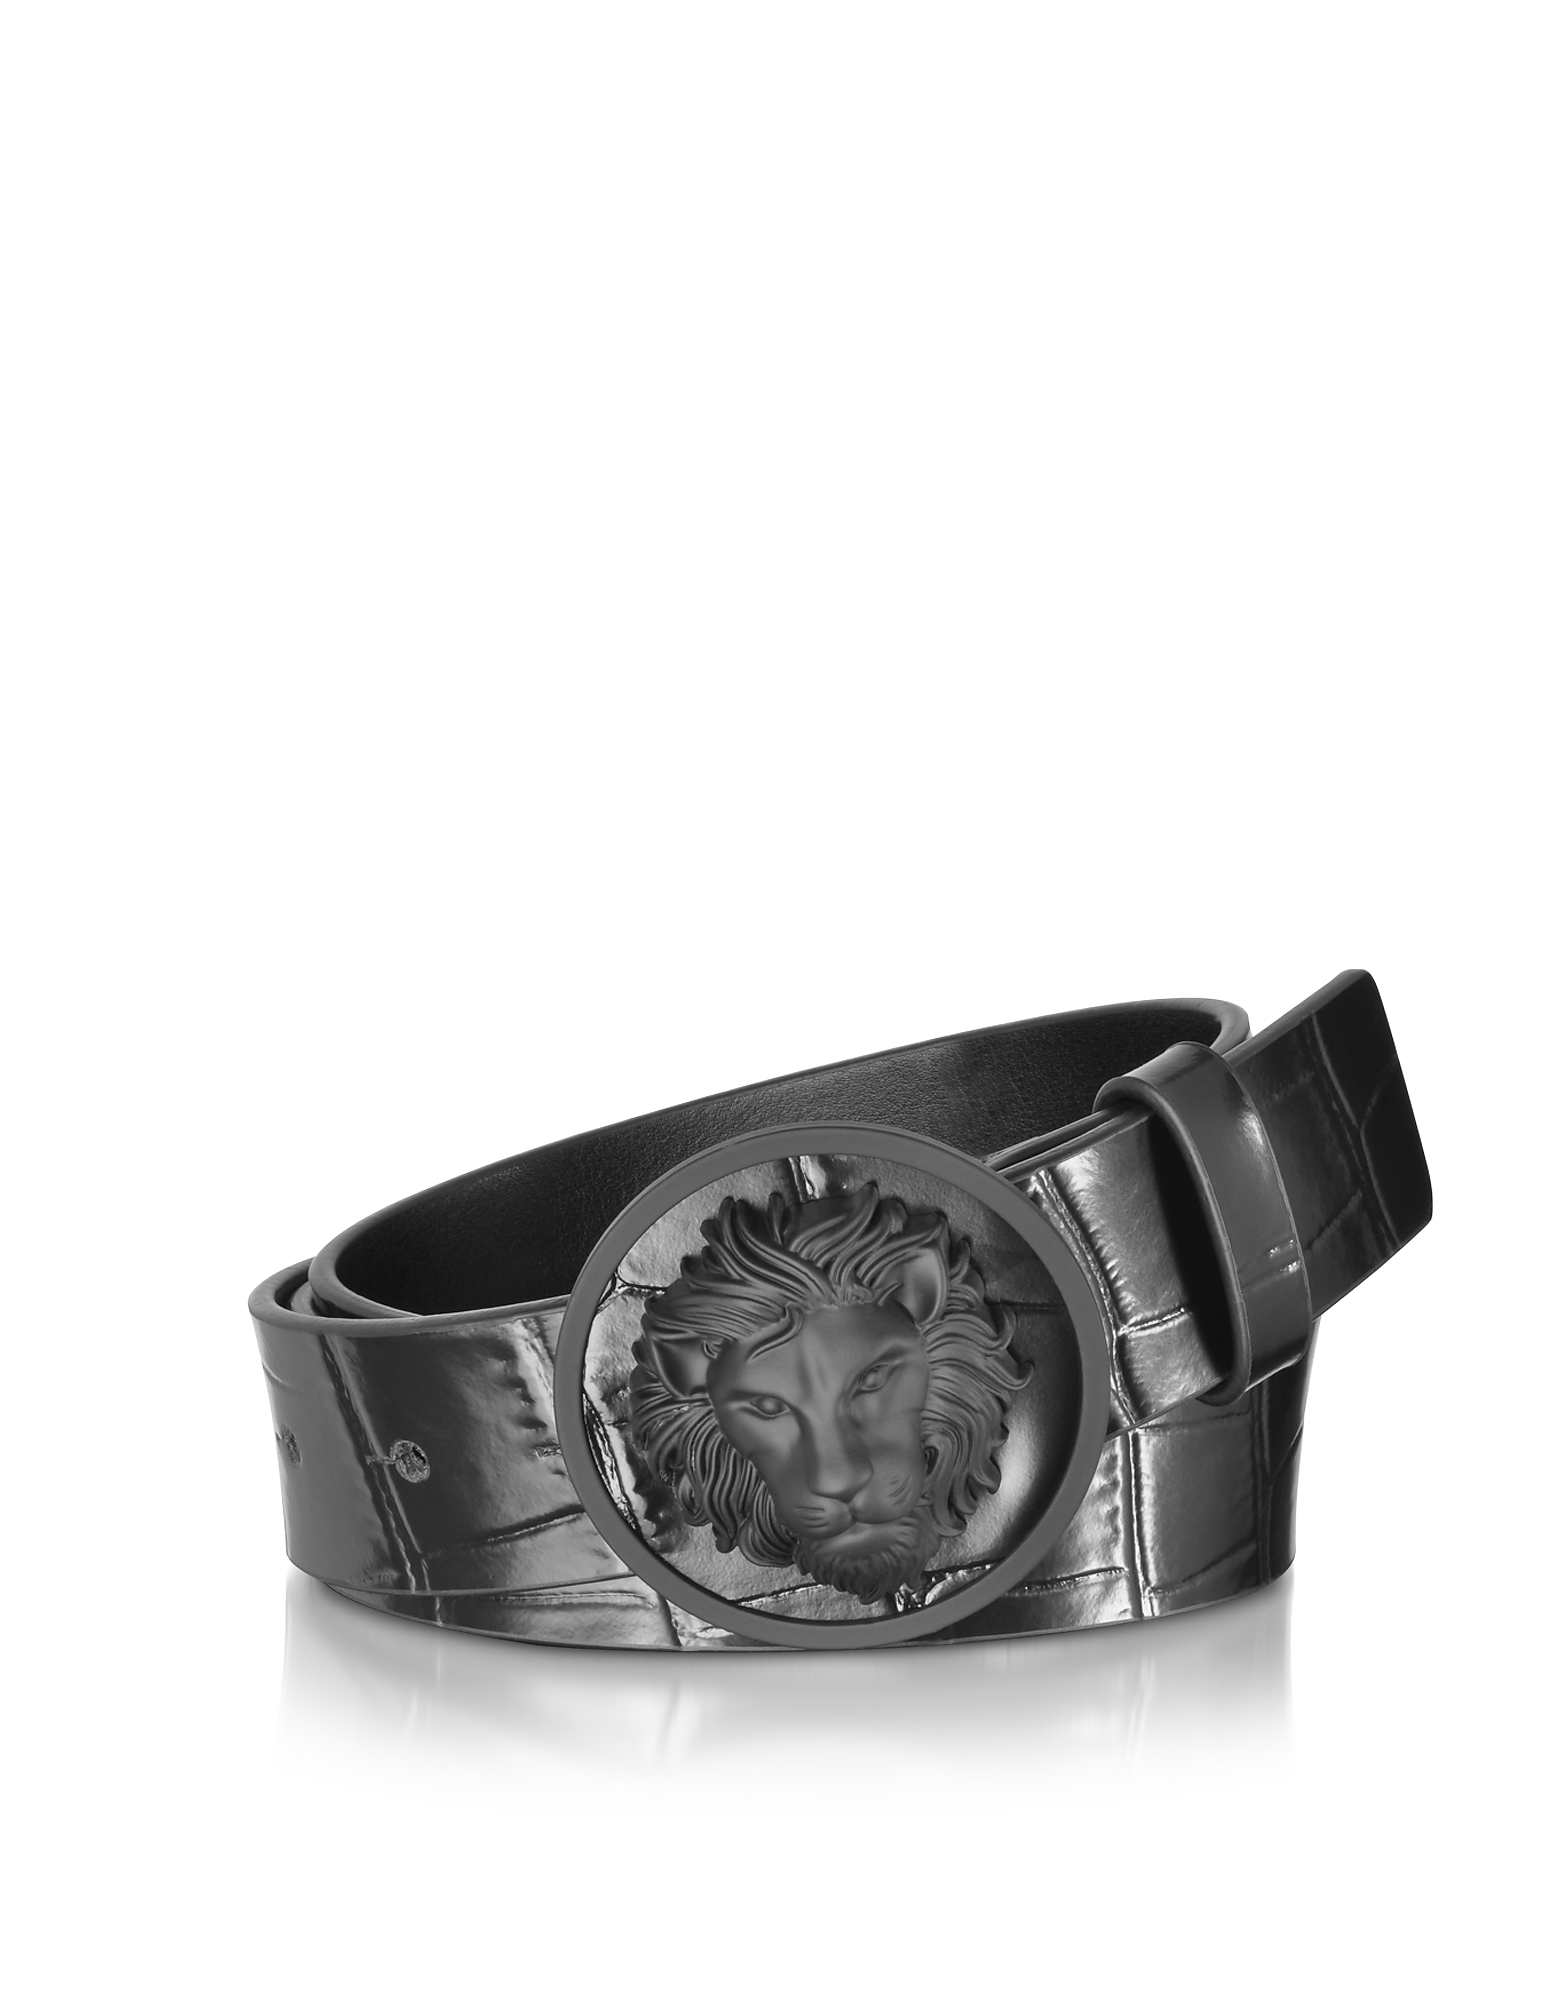 Versace Versus Men's Belts, Black Croco Embossed Leather Men's Belt